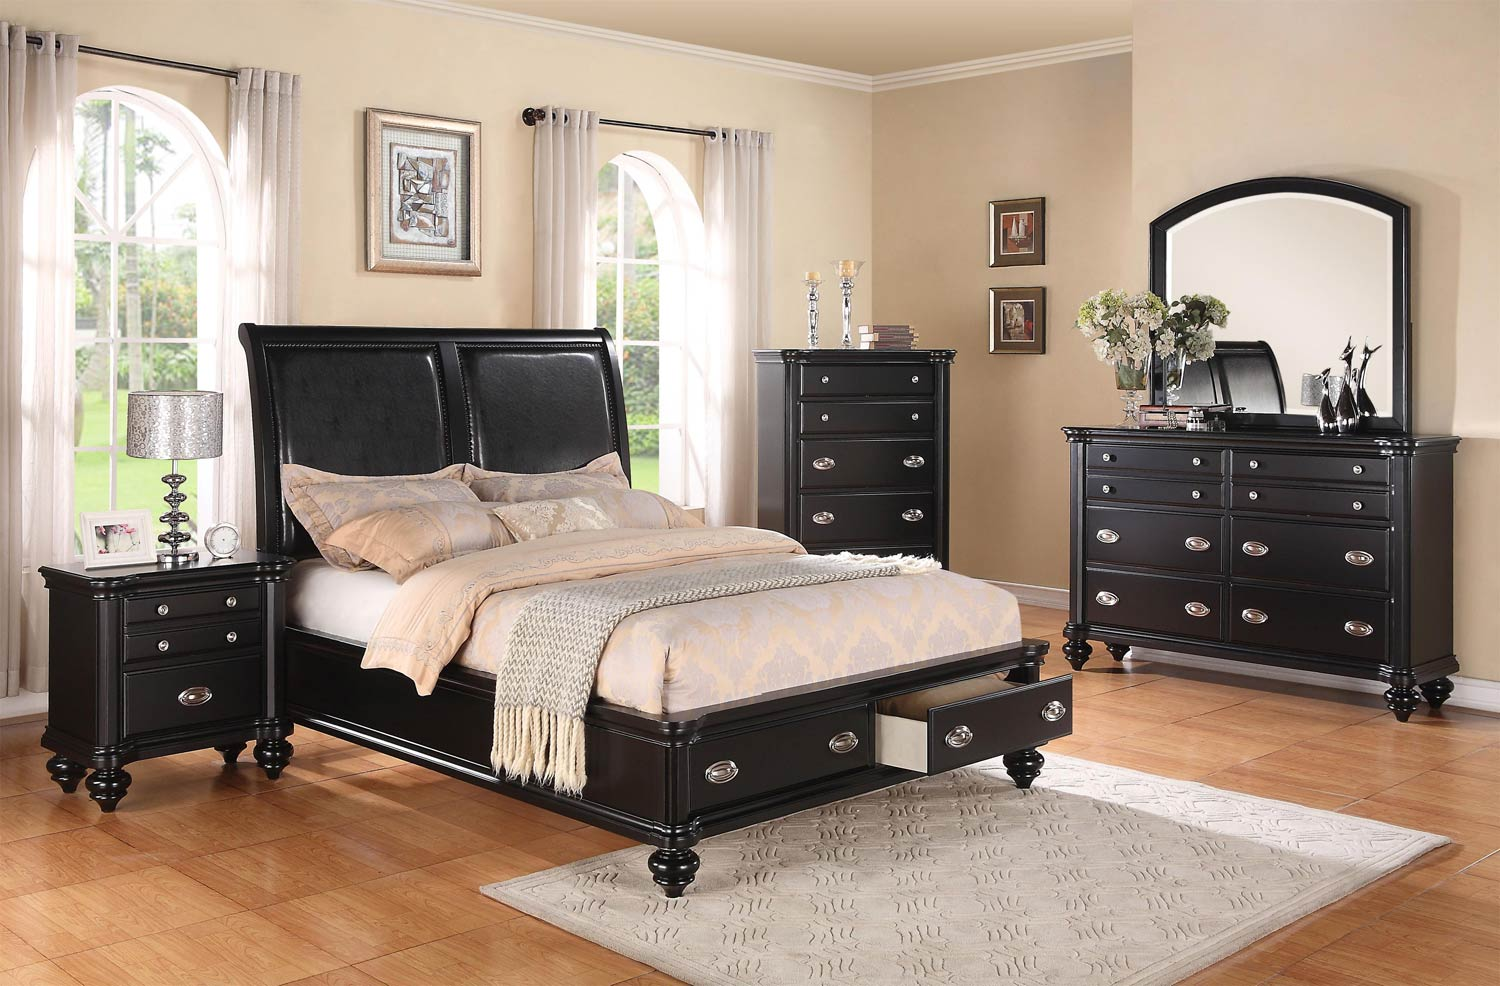 Coaster Lady Valerie Bedroom Collection - Black